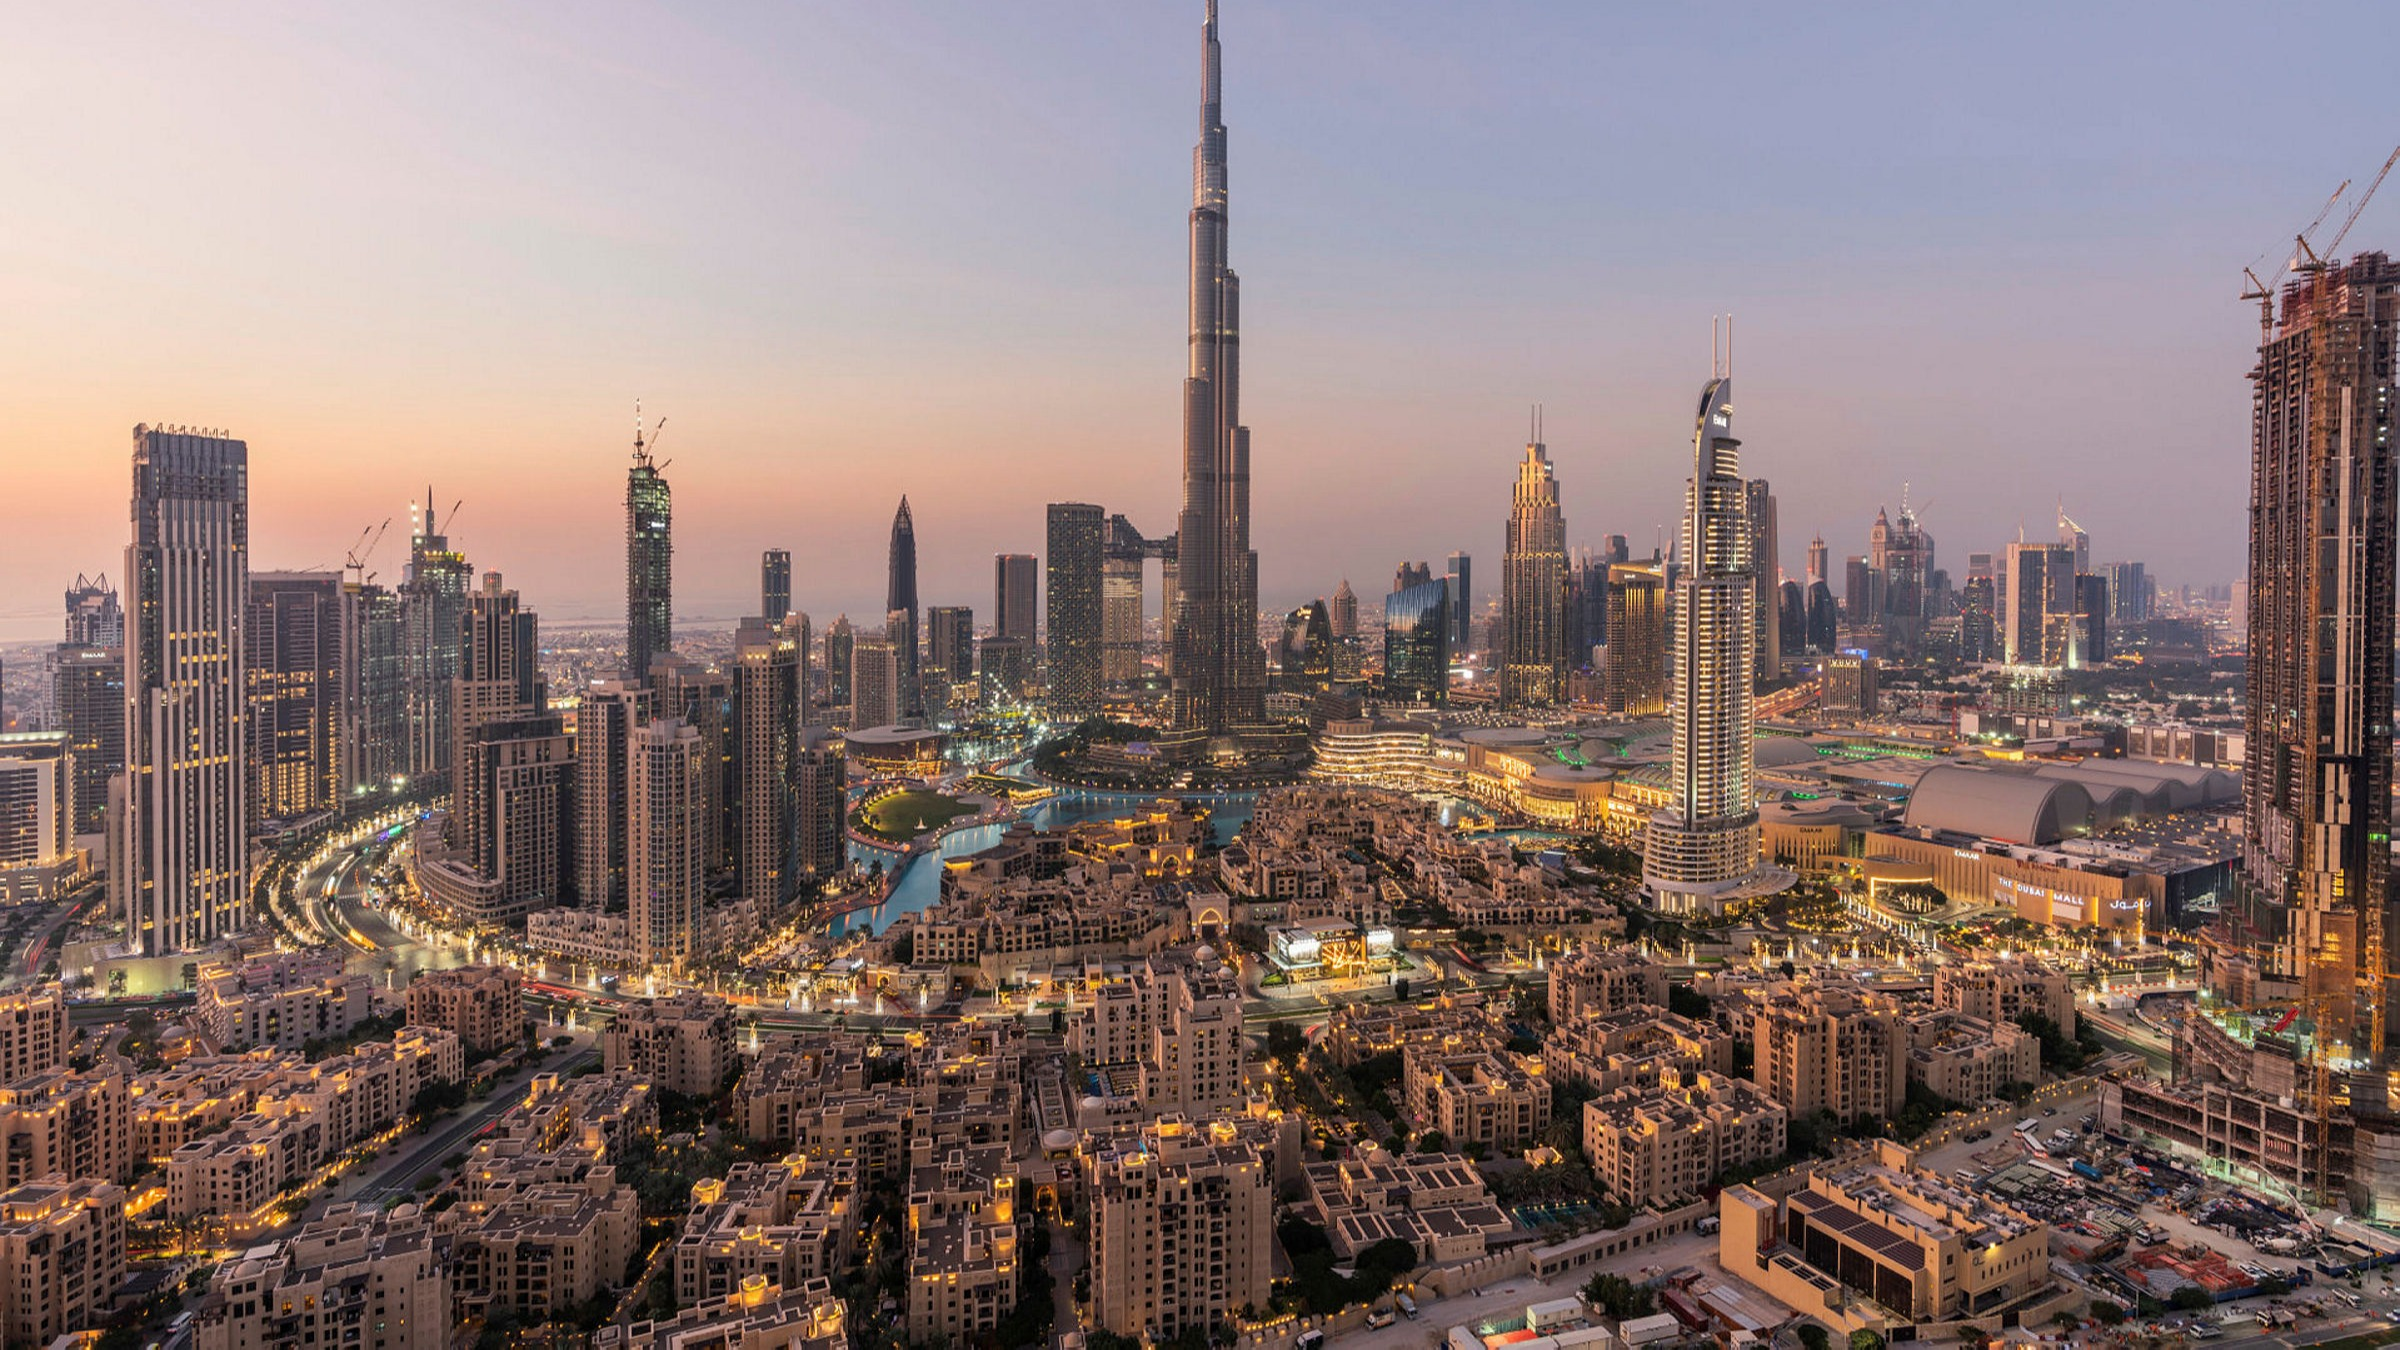 UAE shakes up residency rules by offering passports to wealthy expats |  Financial Times